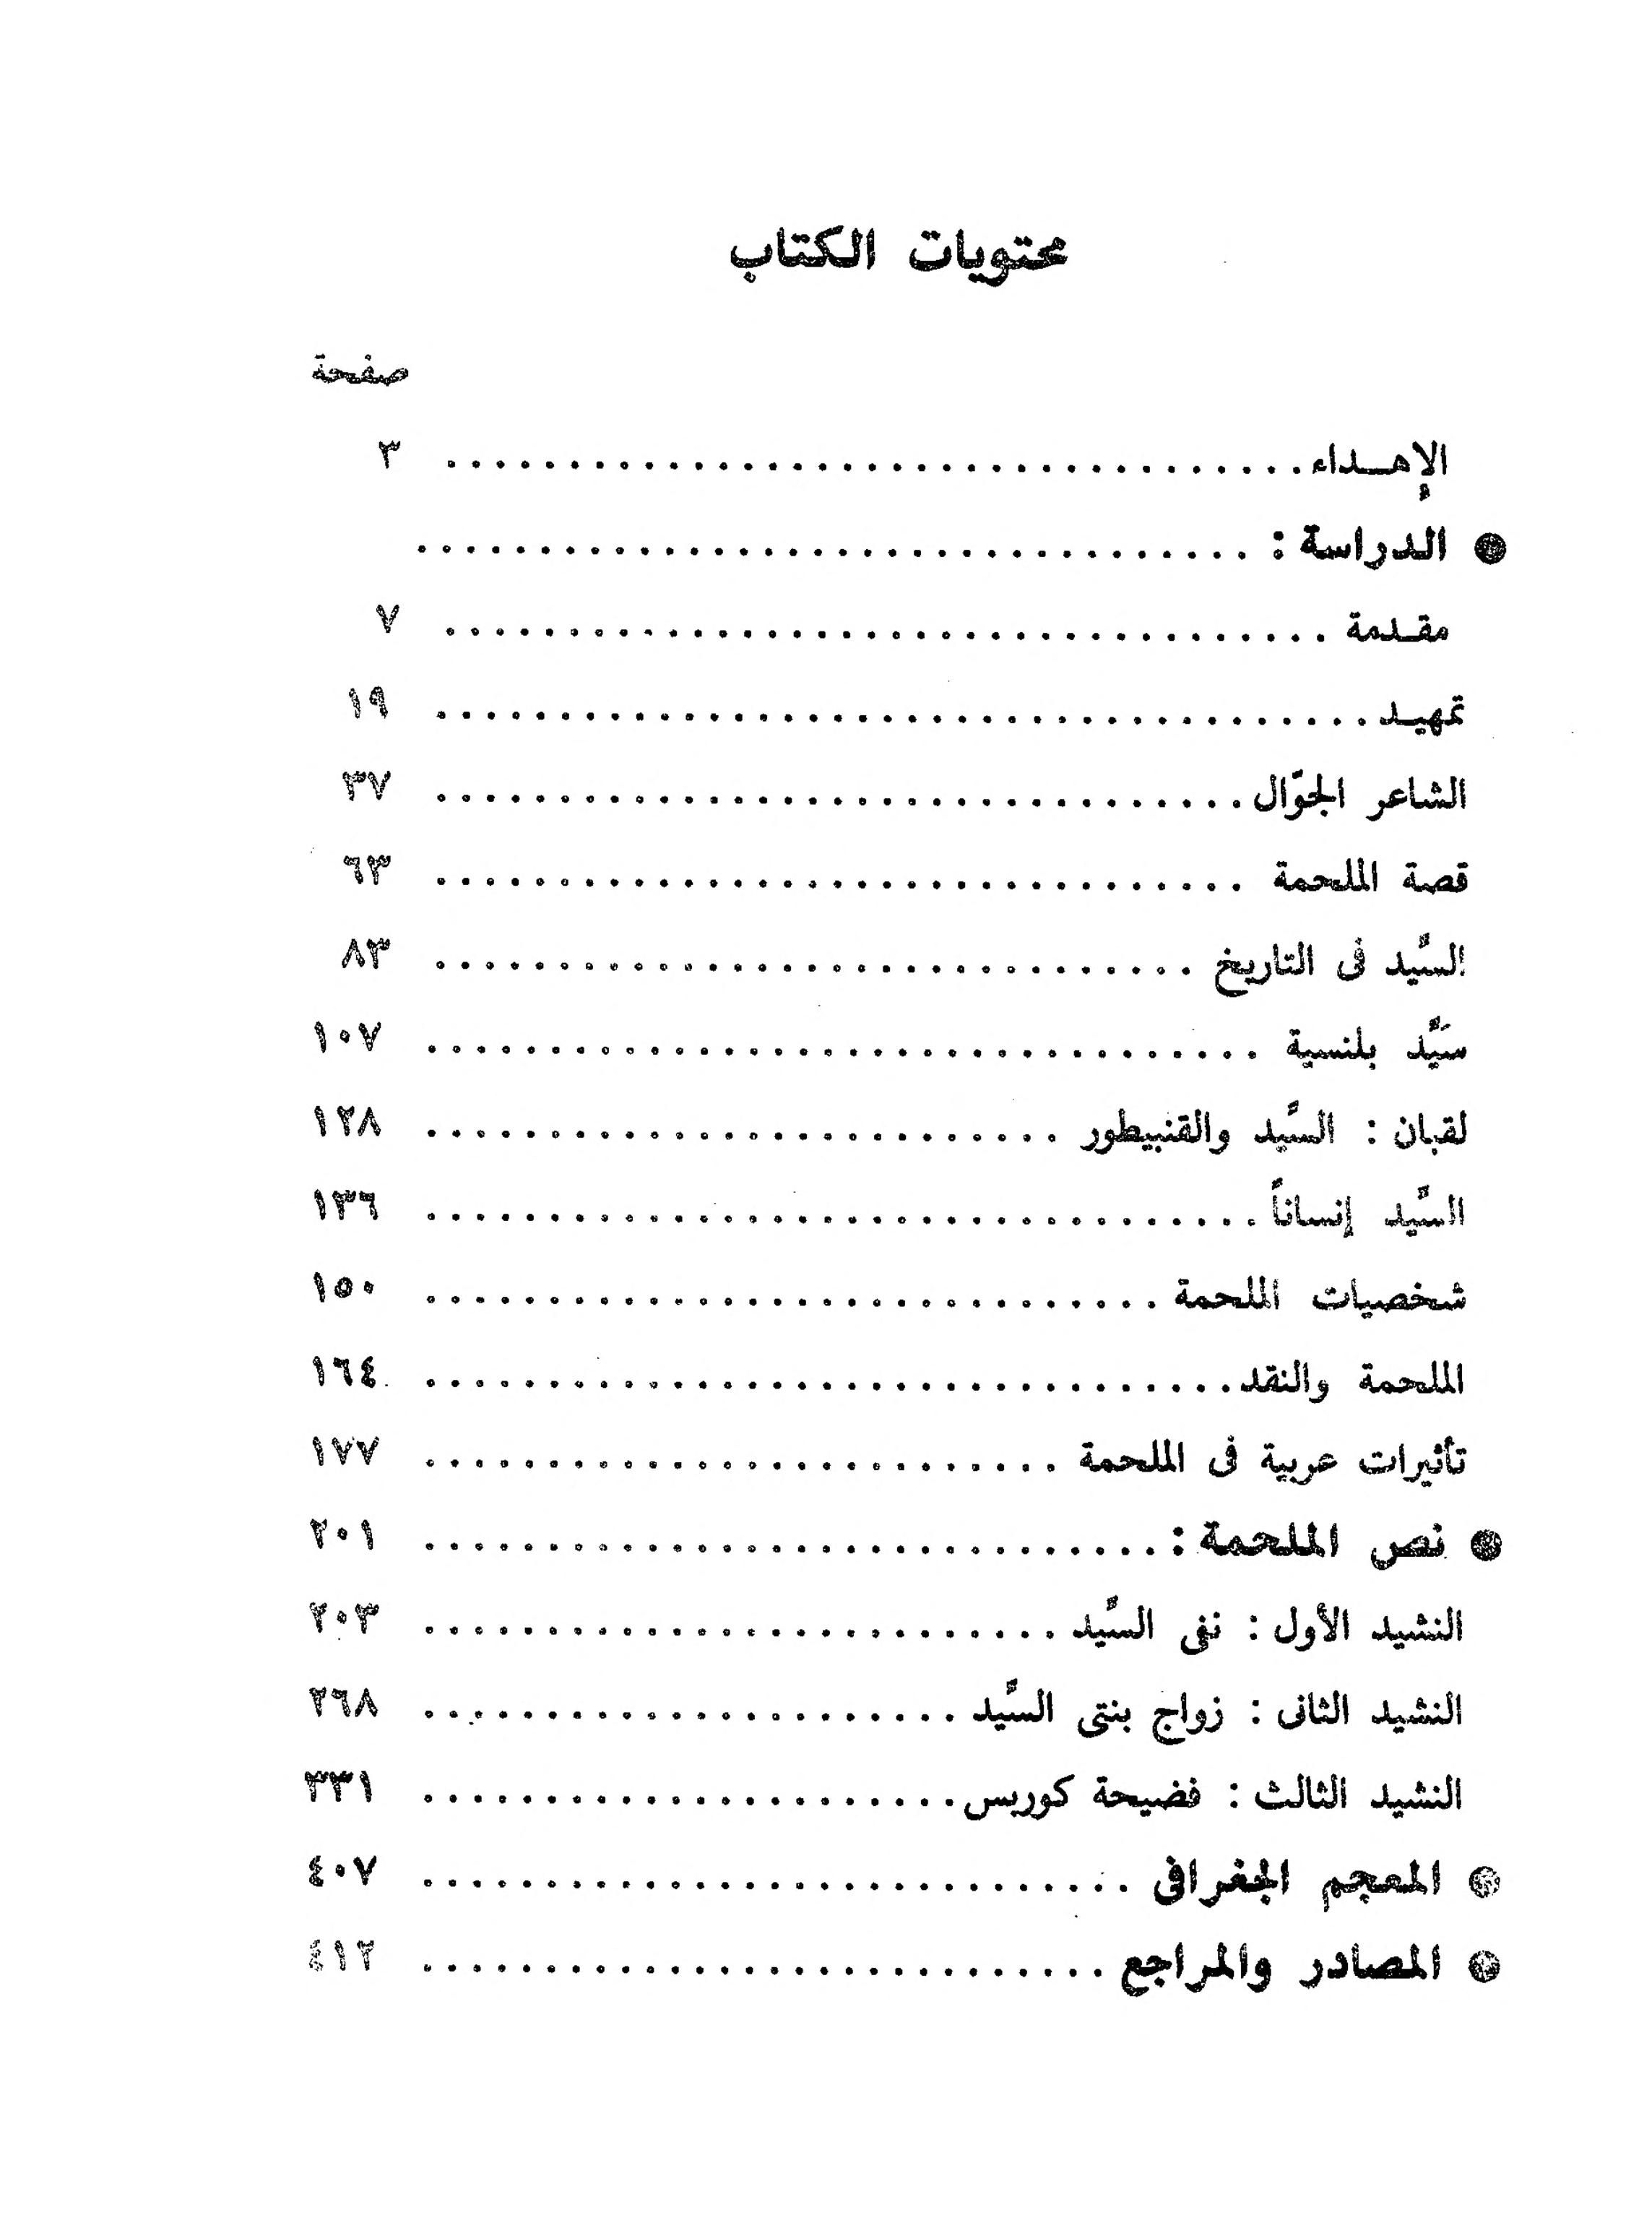 Https Archive Org Stream 0446 20200420 0447 ملحمة السيد Word Search Puzzle My Books Words